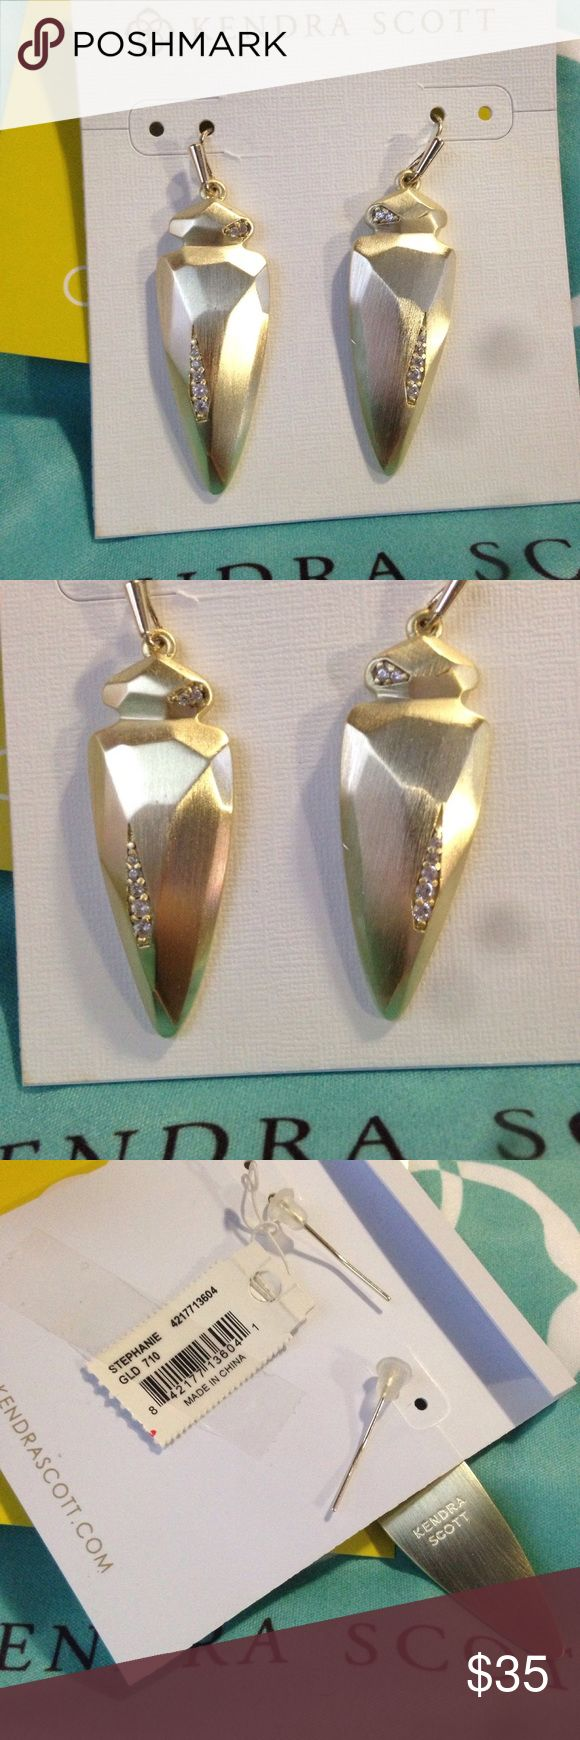 Kendra Scott Stephanie YG Brand new Stephanie earrings in brushed Yellow Gold with crystal accents by Kendra Scott. Display card, care card, dustbag bag, silicone backs, and tags included. Priced for quick sale!  NOTE: solid metal, not hollow, slightly heavier than an Elle; two small flaws (scratches) on second earring, see last pic.  ✅ offєɾѕ ✅ вυndlєѕ ✅ tɾαdєѕ ✅ cɾoѕѕ-ρoѕтєd ❌ ραყραl Kendra Scott Jewelry Earrings